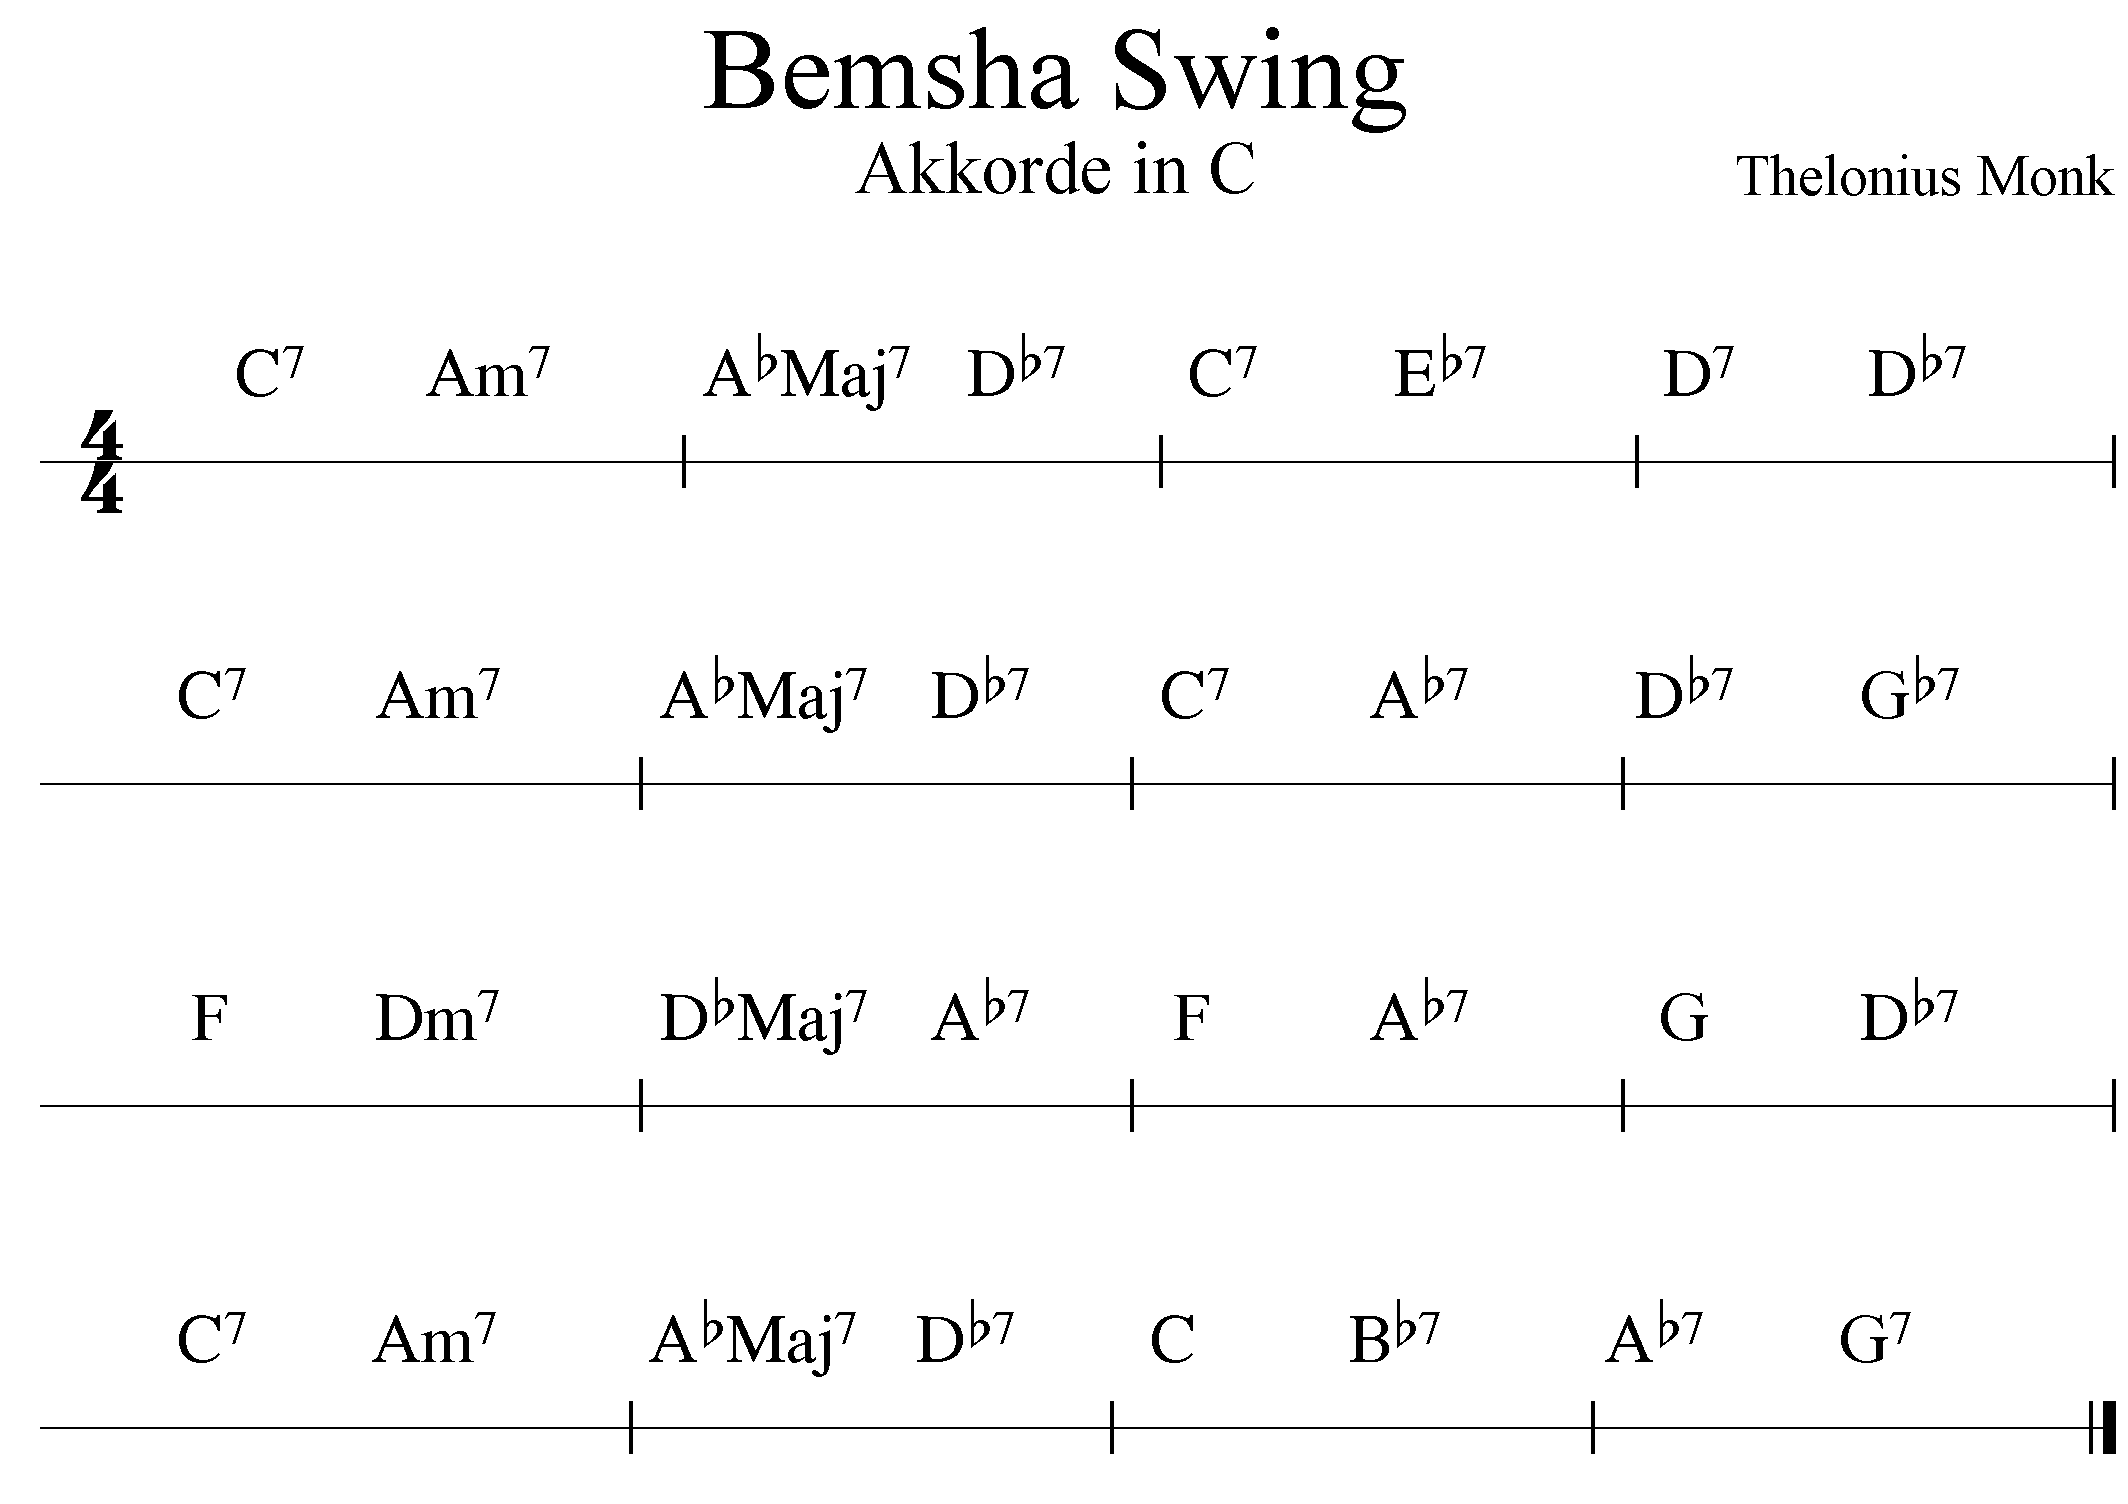 Bemsha Swing - Akkorde in C